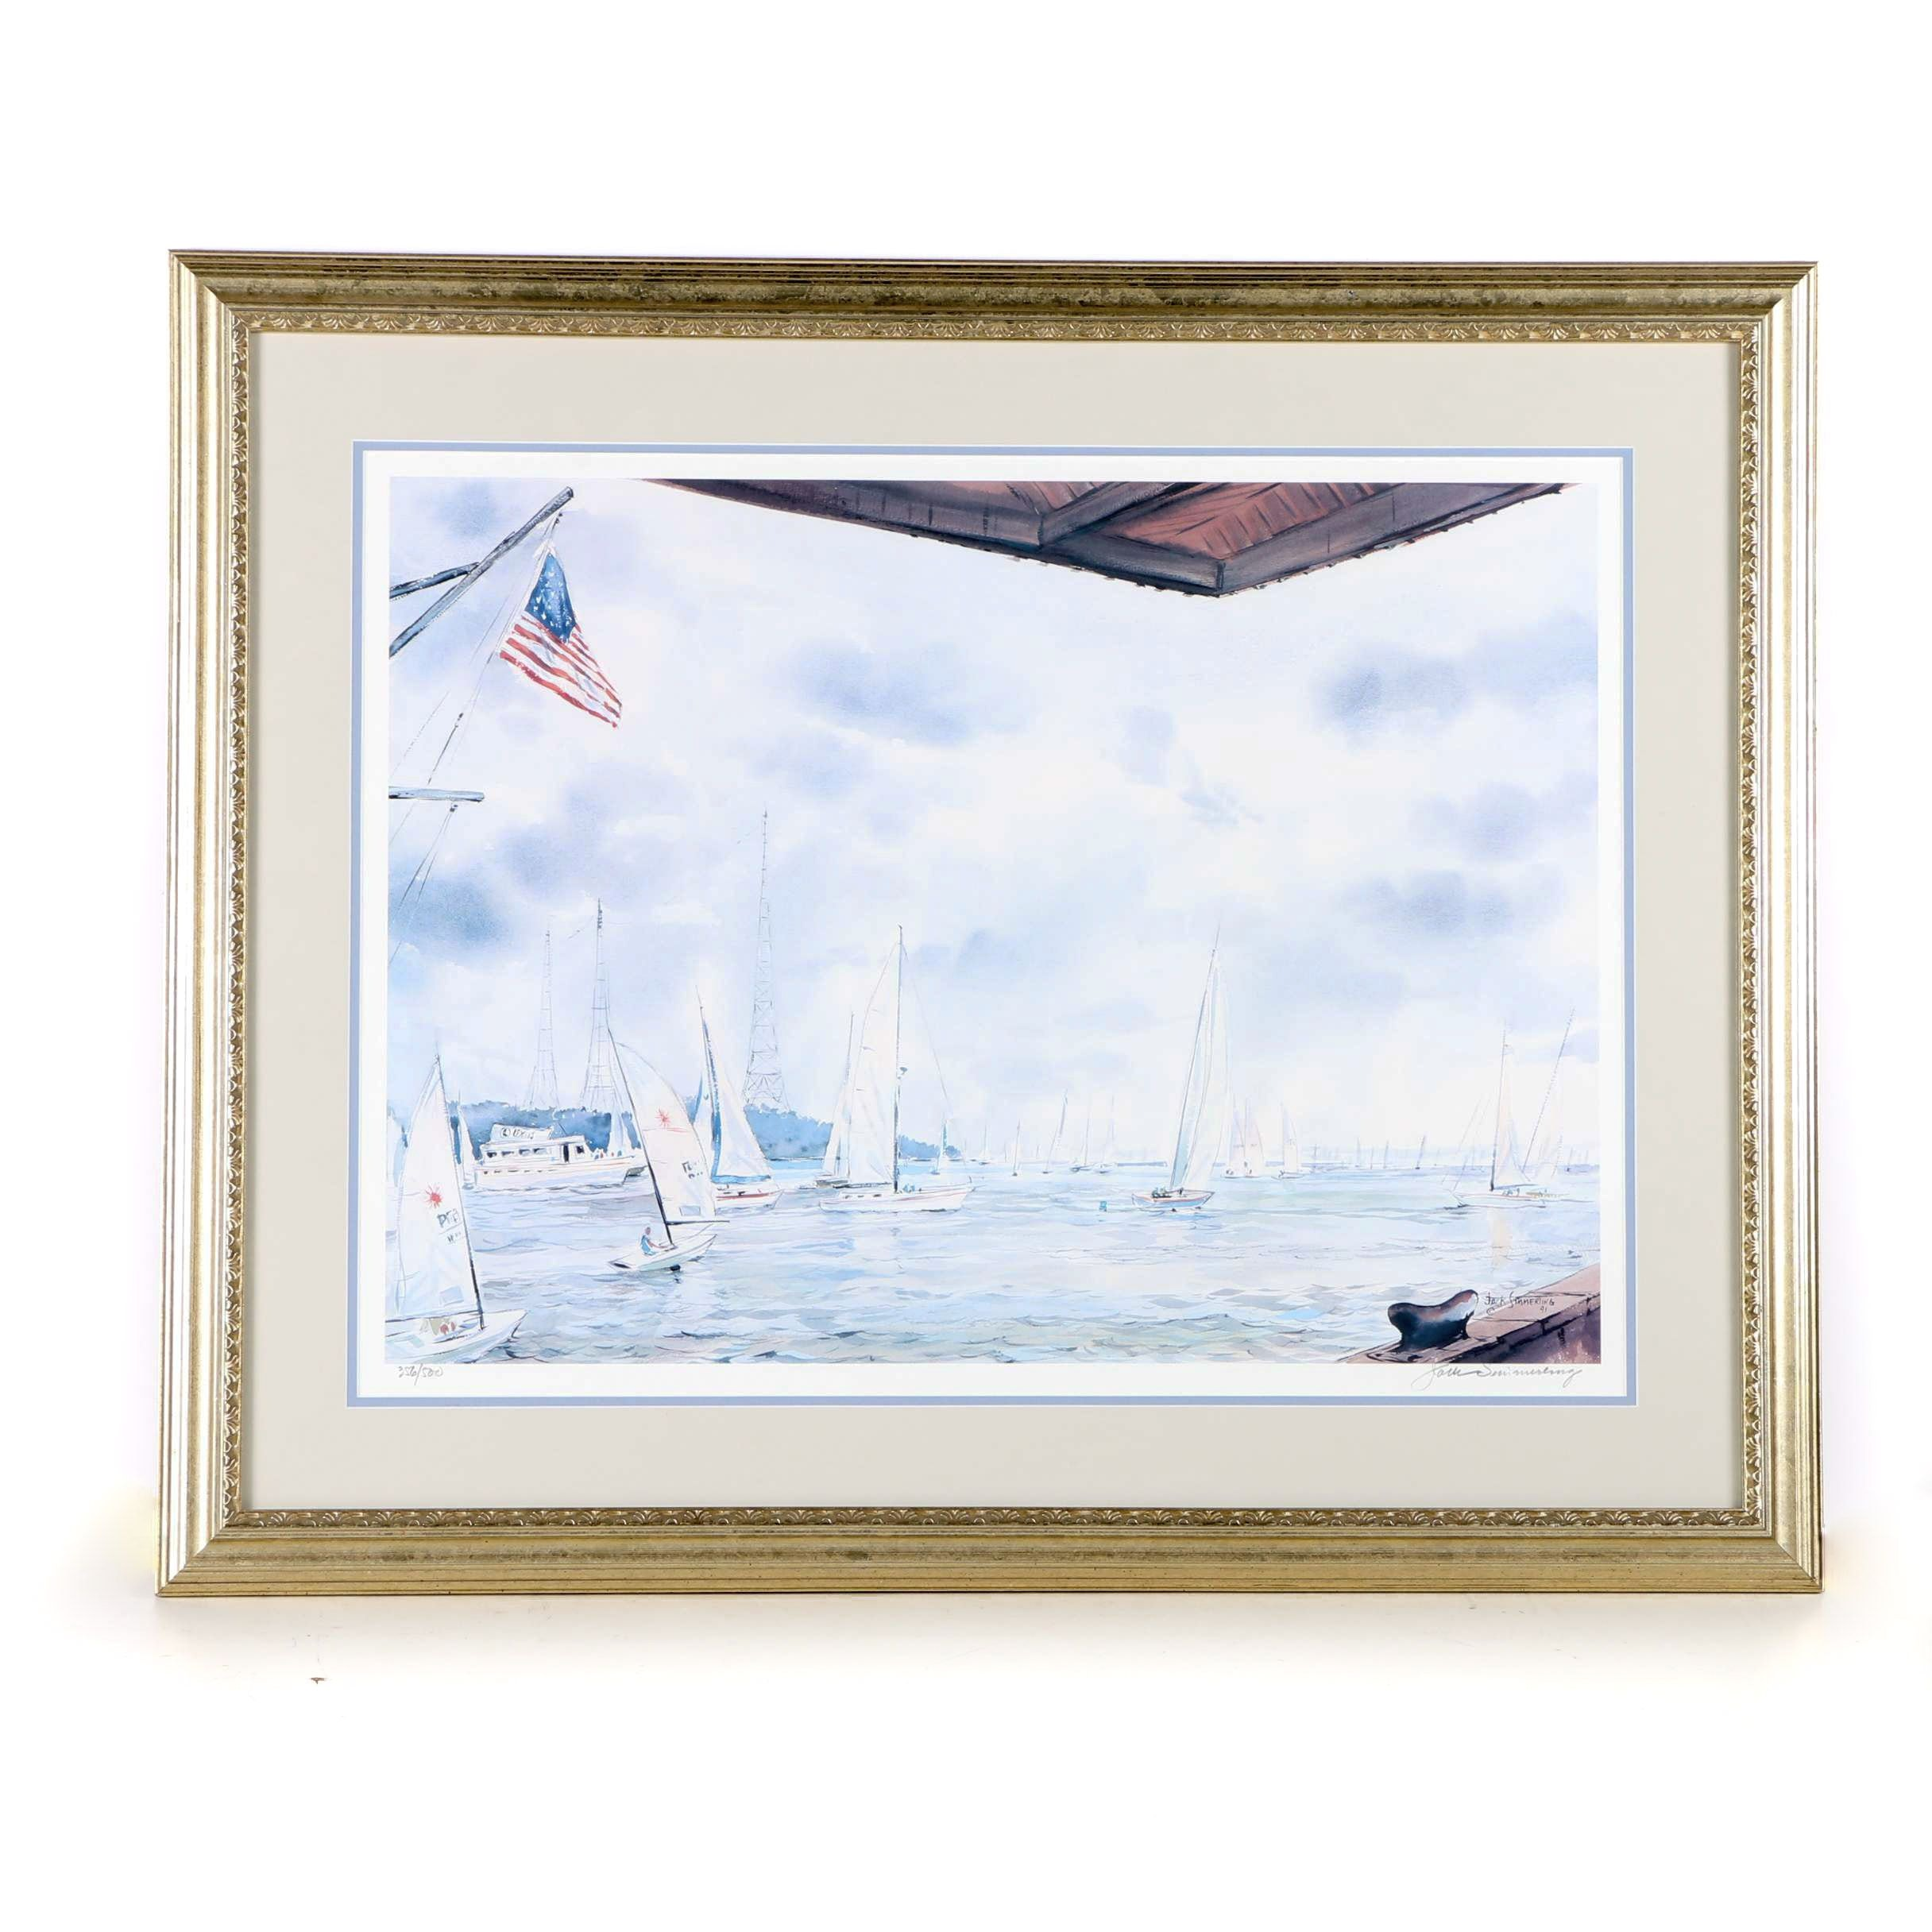 Jack Simmerling Limited Edition Offset Lithograph of a Sailing Regatta